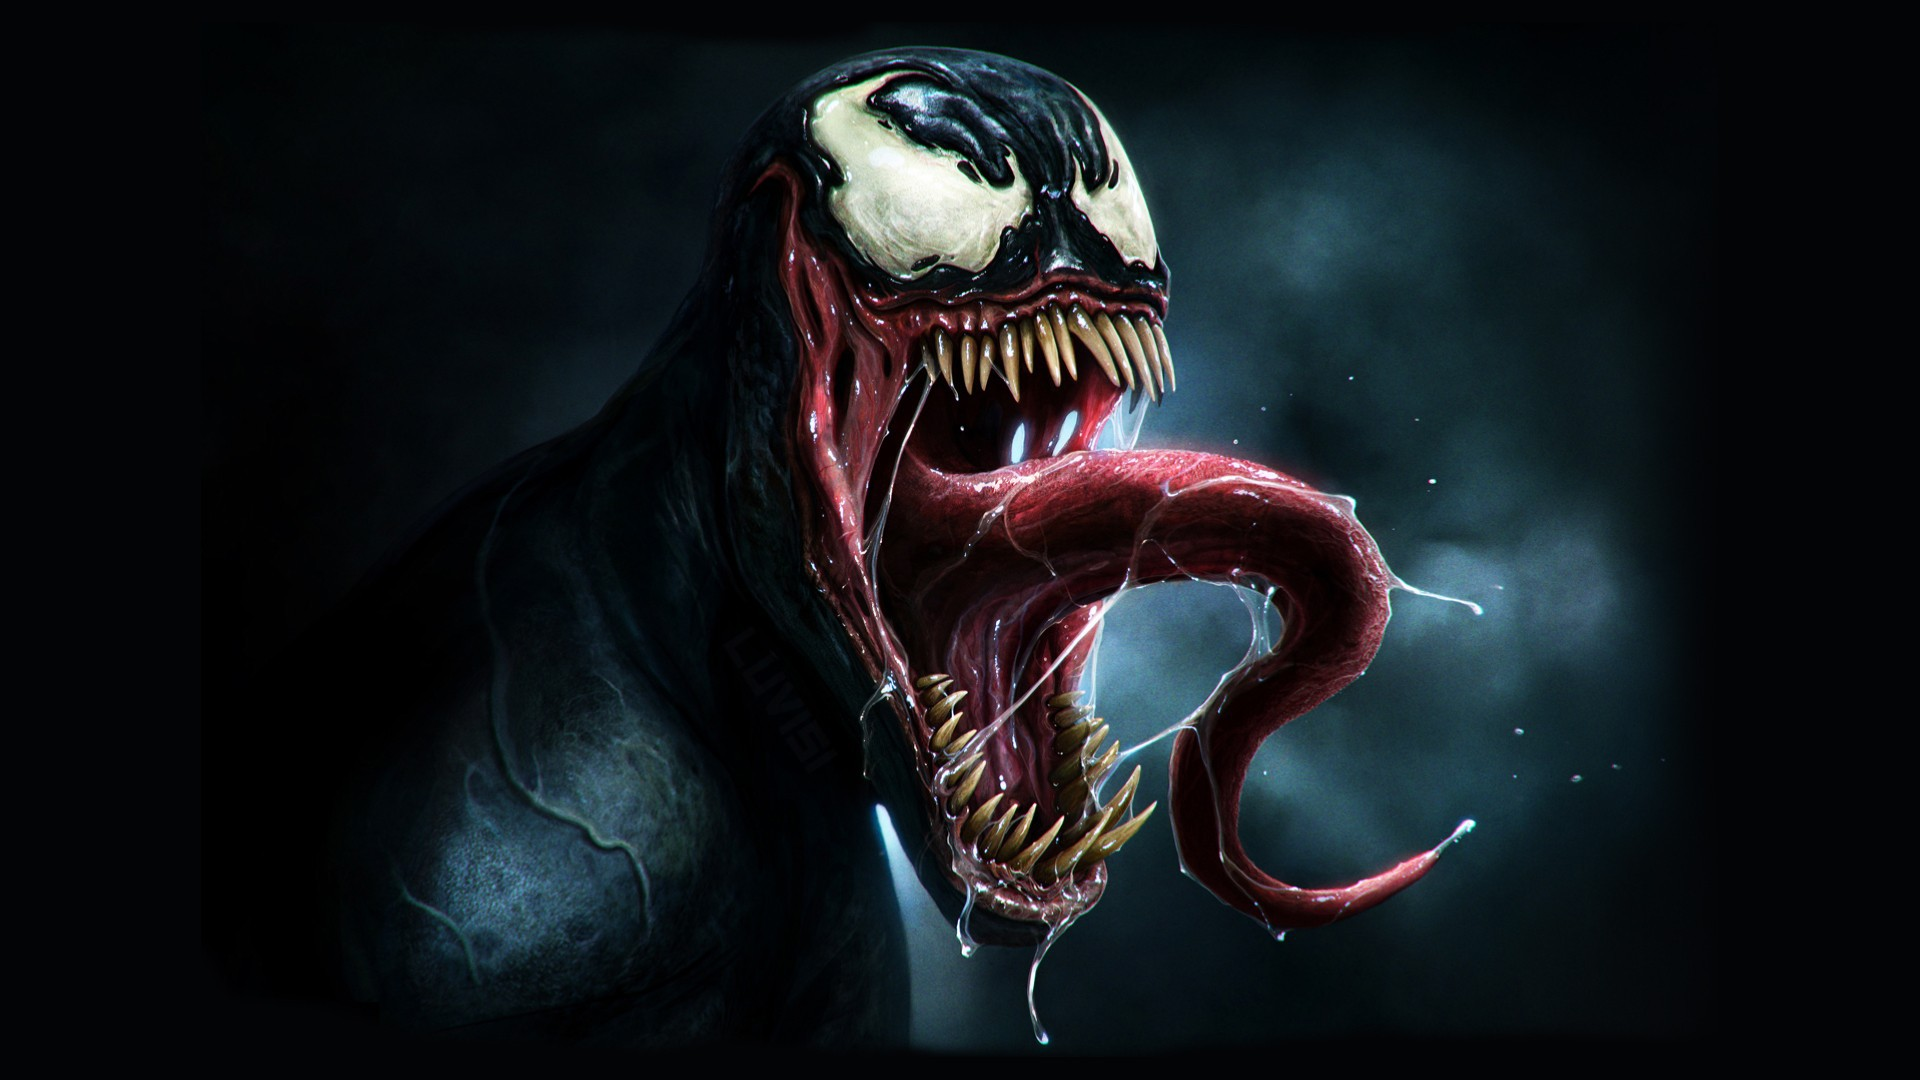 Smile Fangs Marvel comics comics Venom wallpapers and images 1920x1080